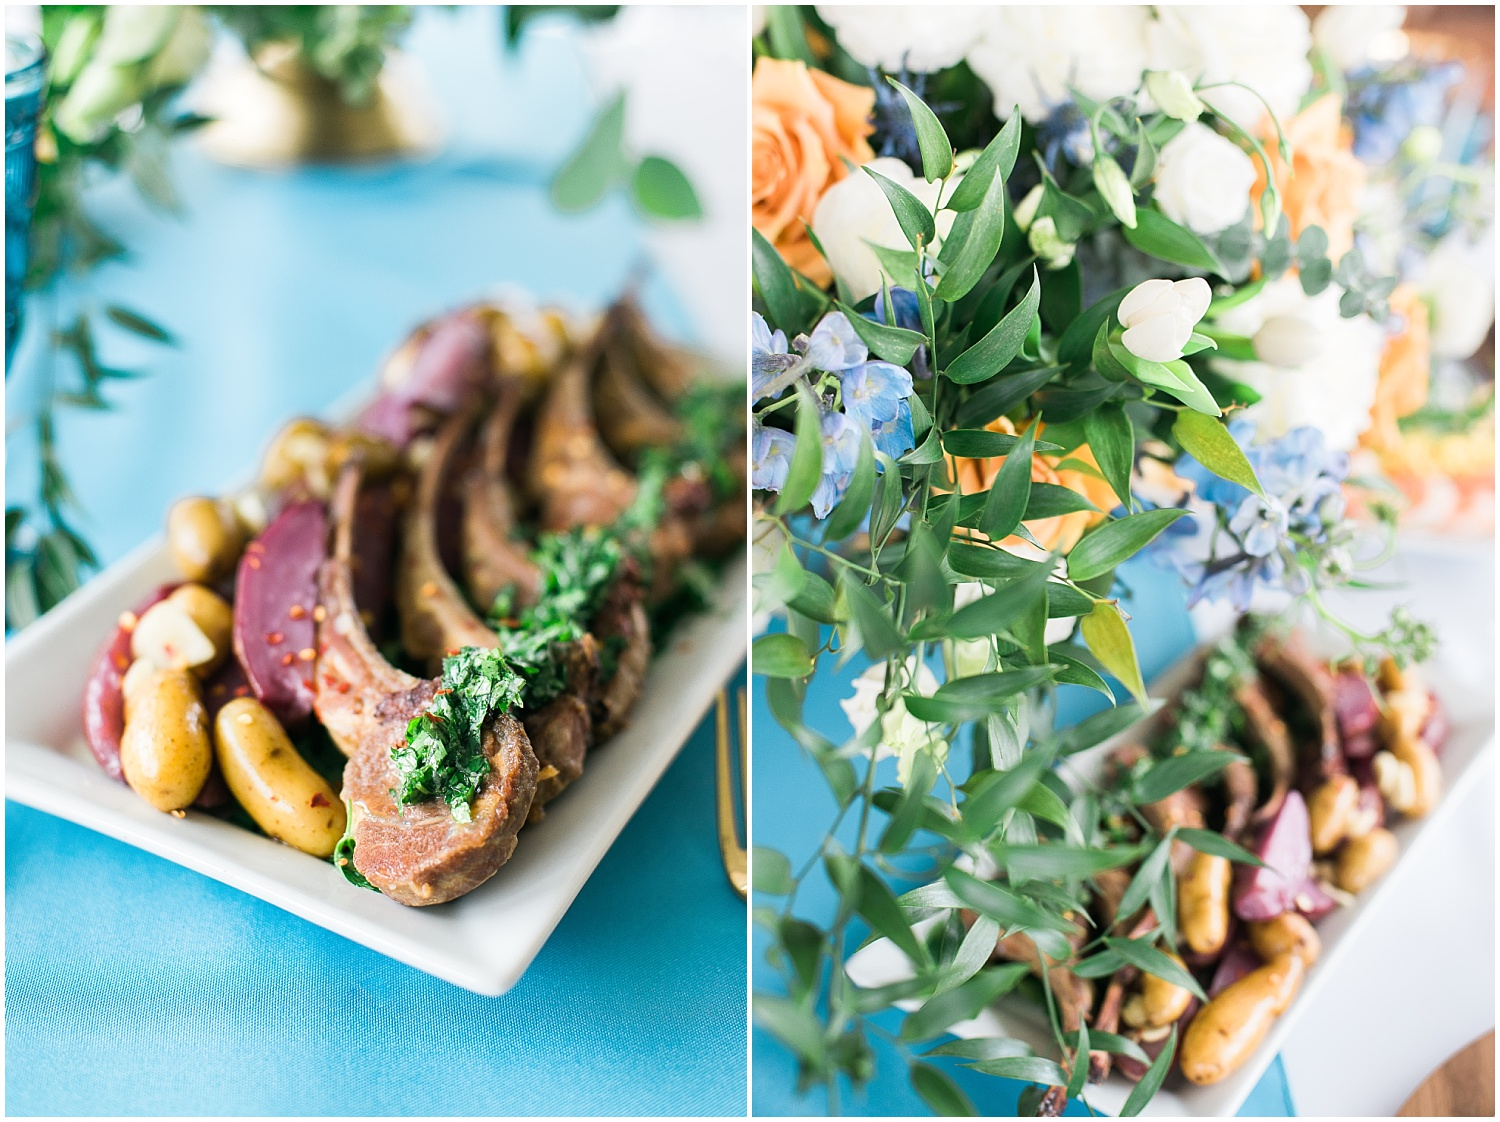 lamb-chops-wedding-reception